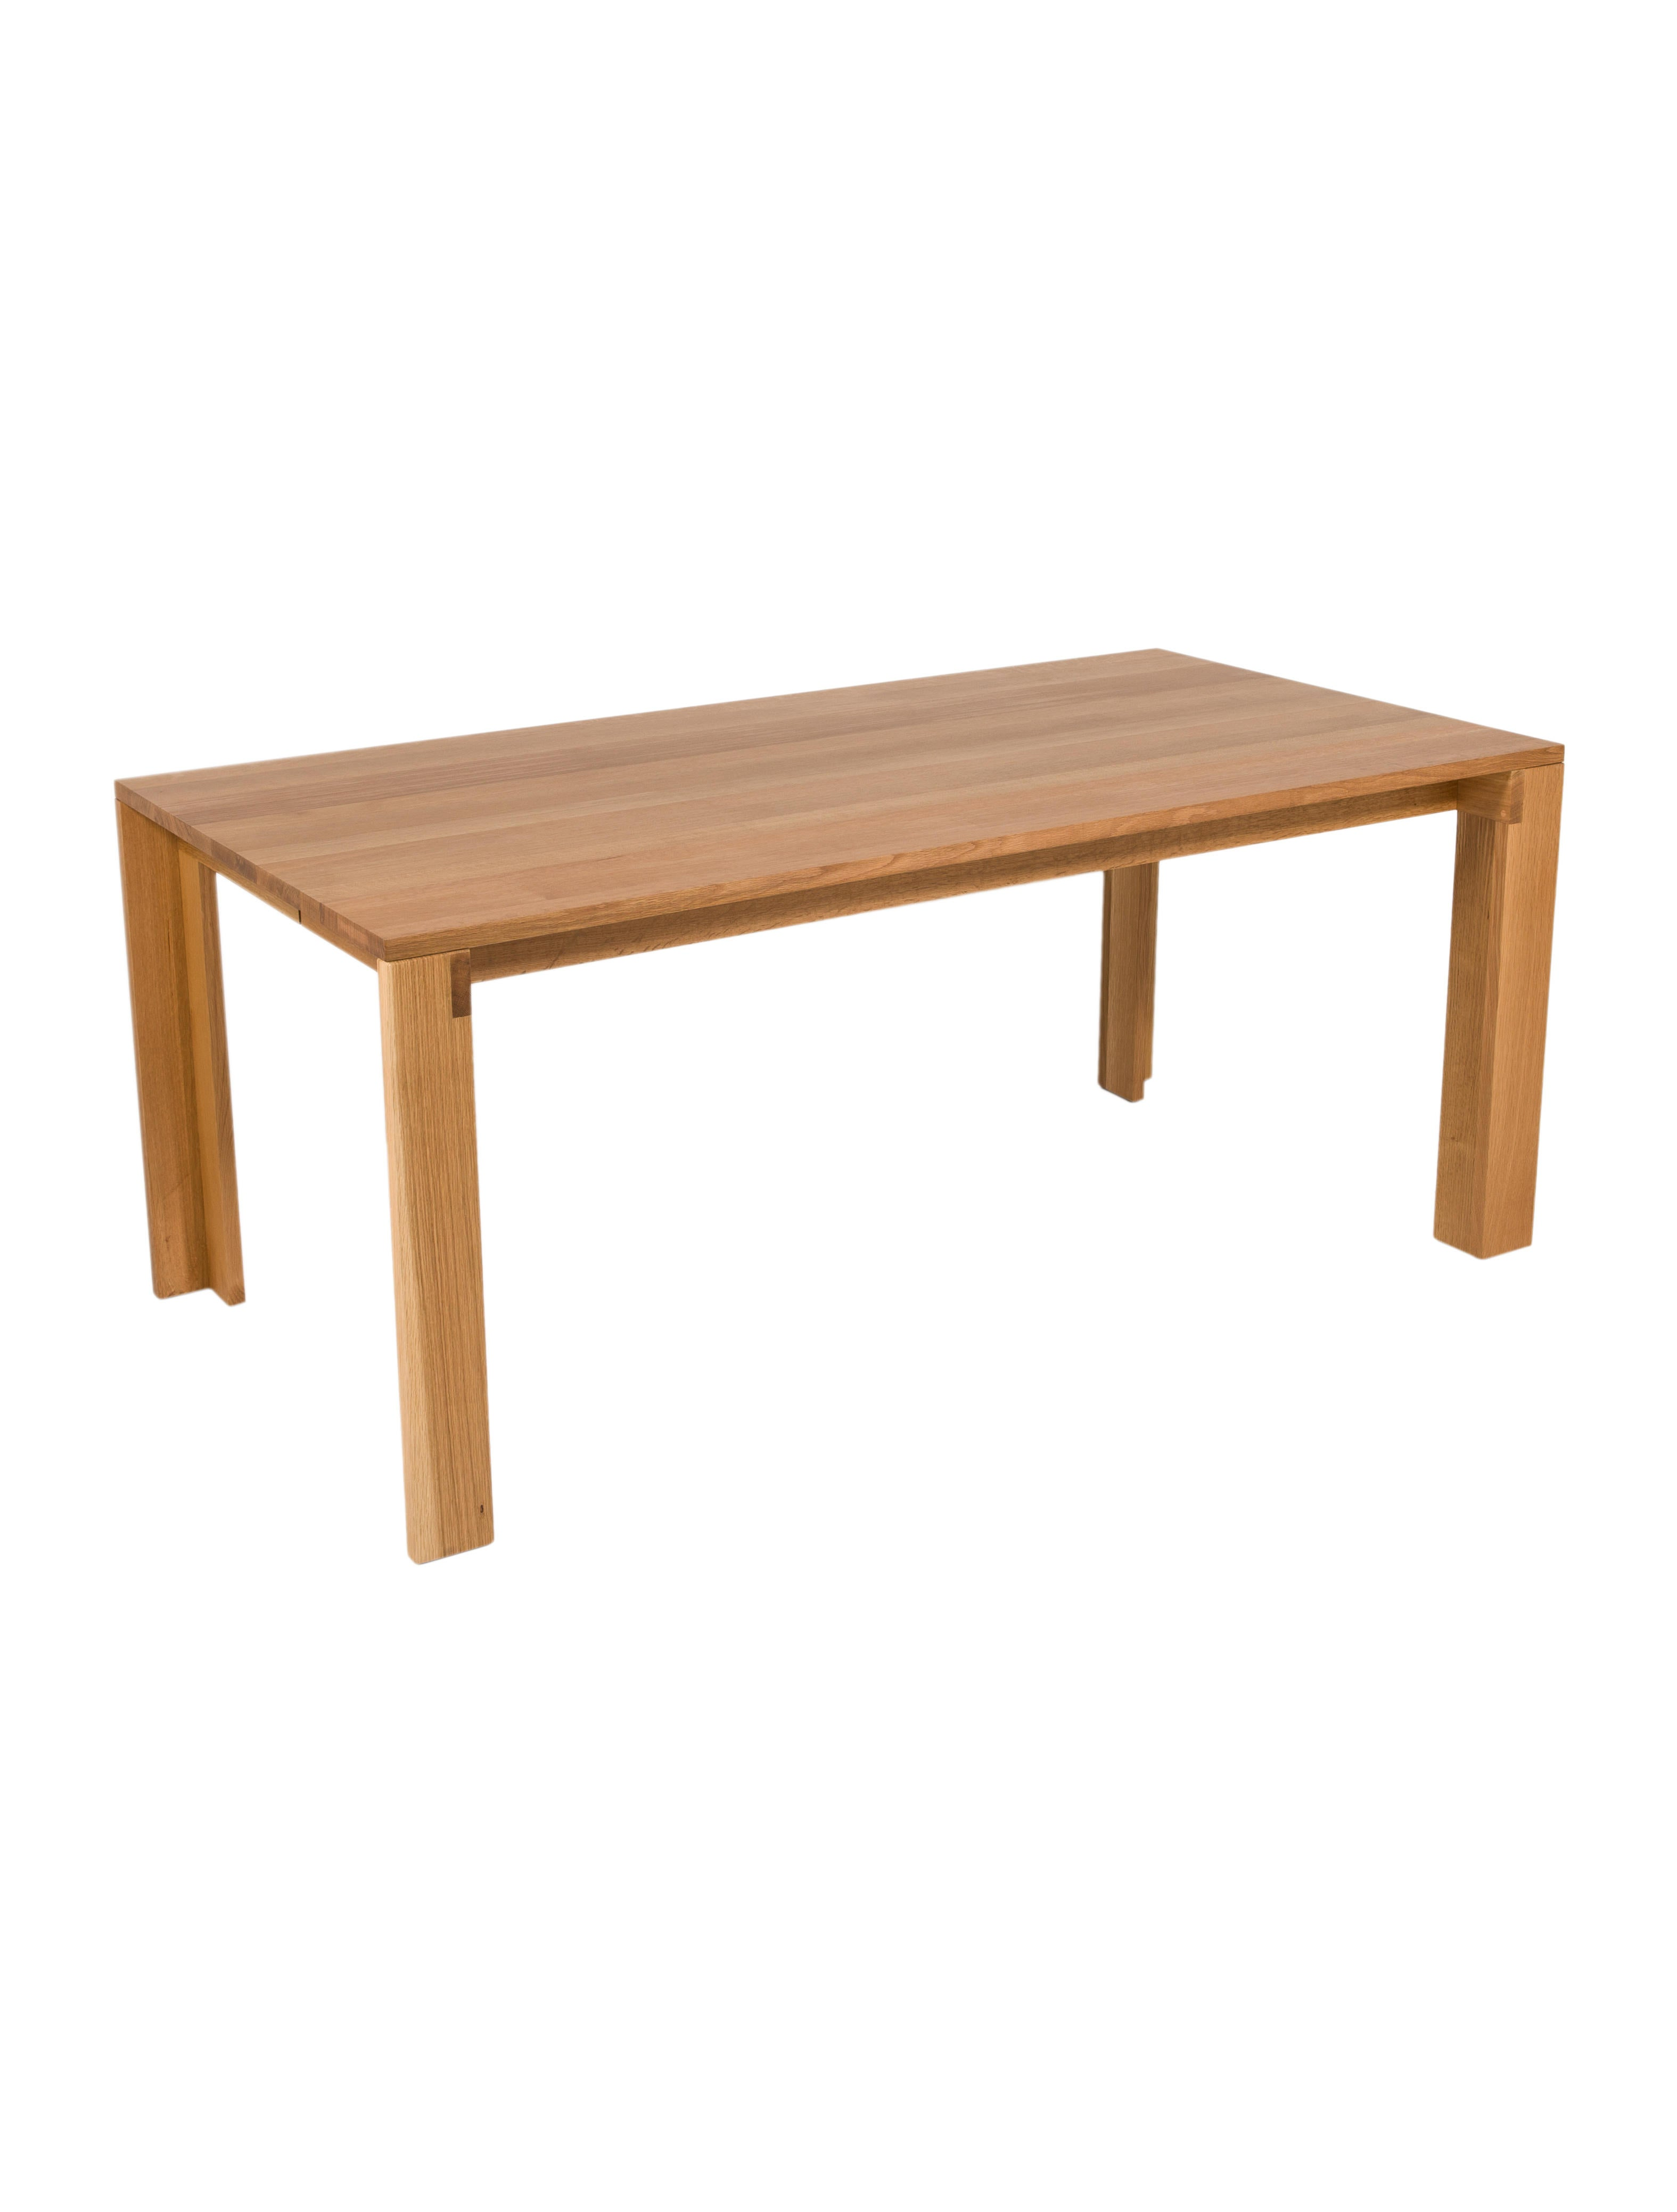 Design Within Reach Mapp Dining Table